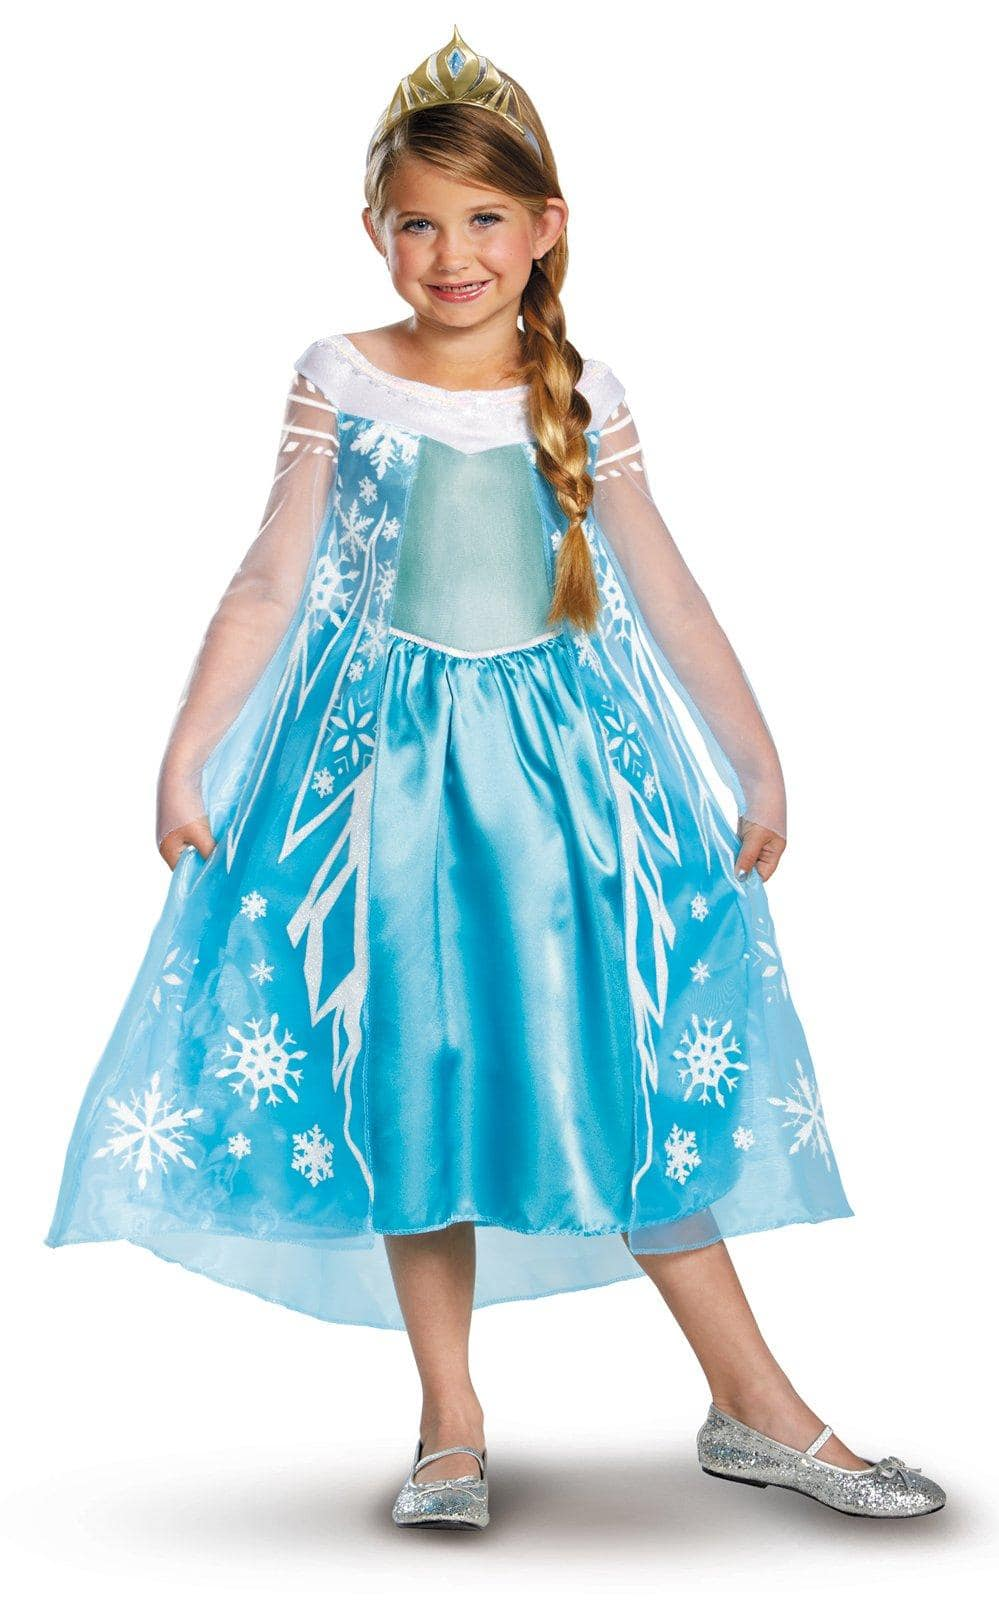 Free Disney's Frozen's Elsa Child's Costume with any $15+ costume purchase from BuyCostumes